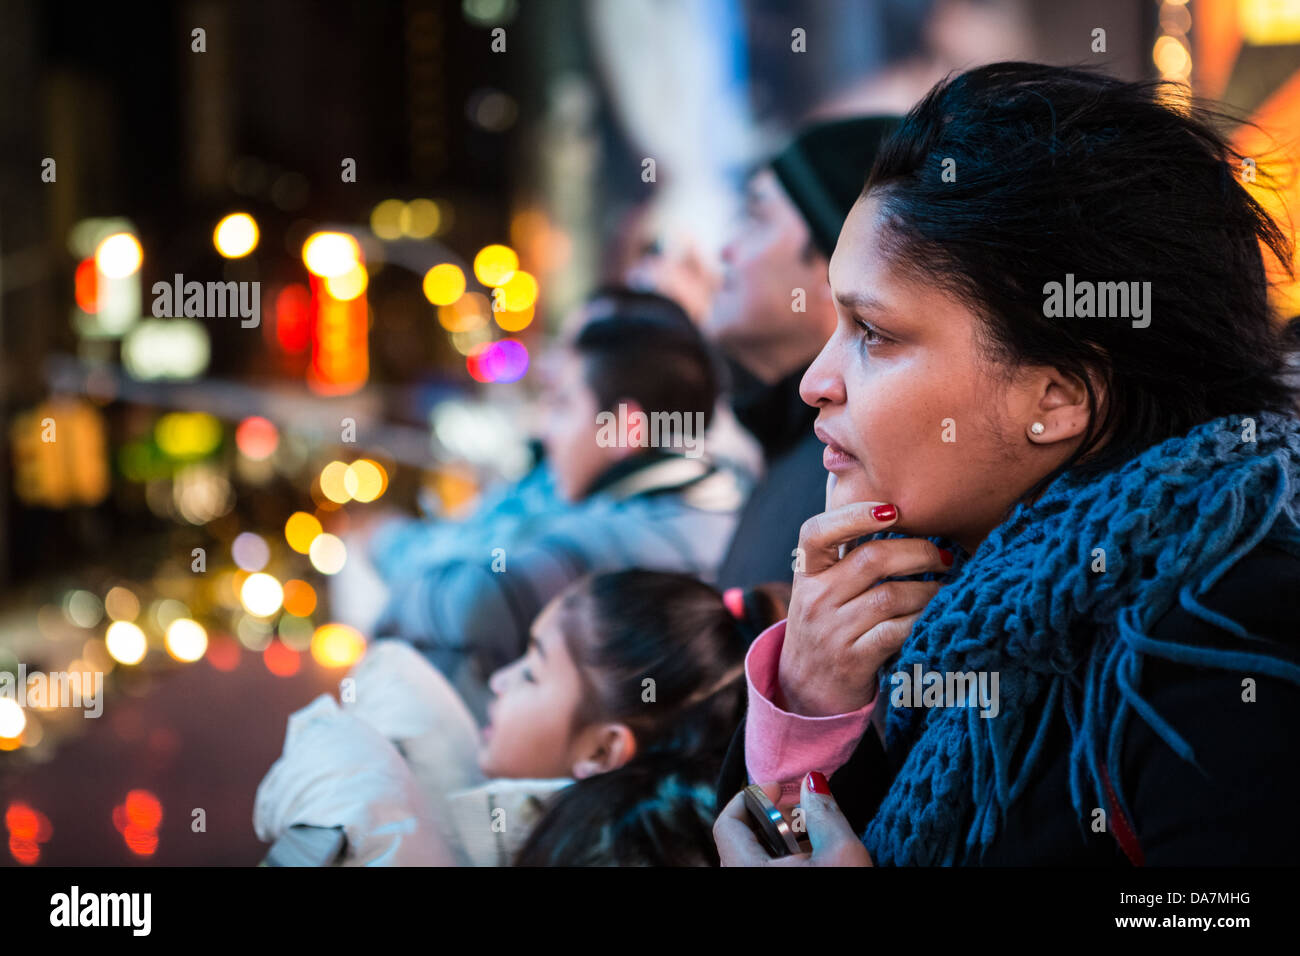 Profile Portrait of a Times Square tourist with the city lights in the background - Stock Image